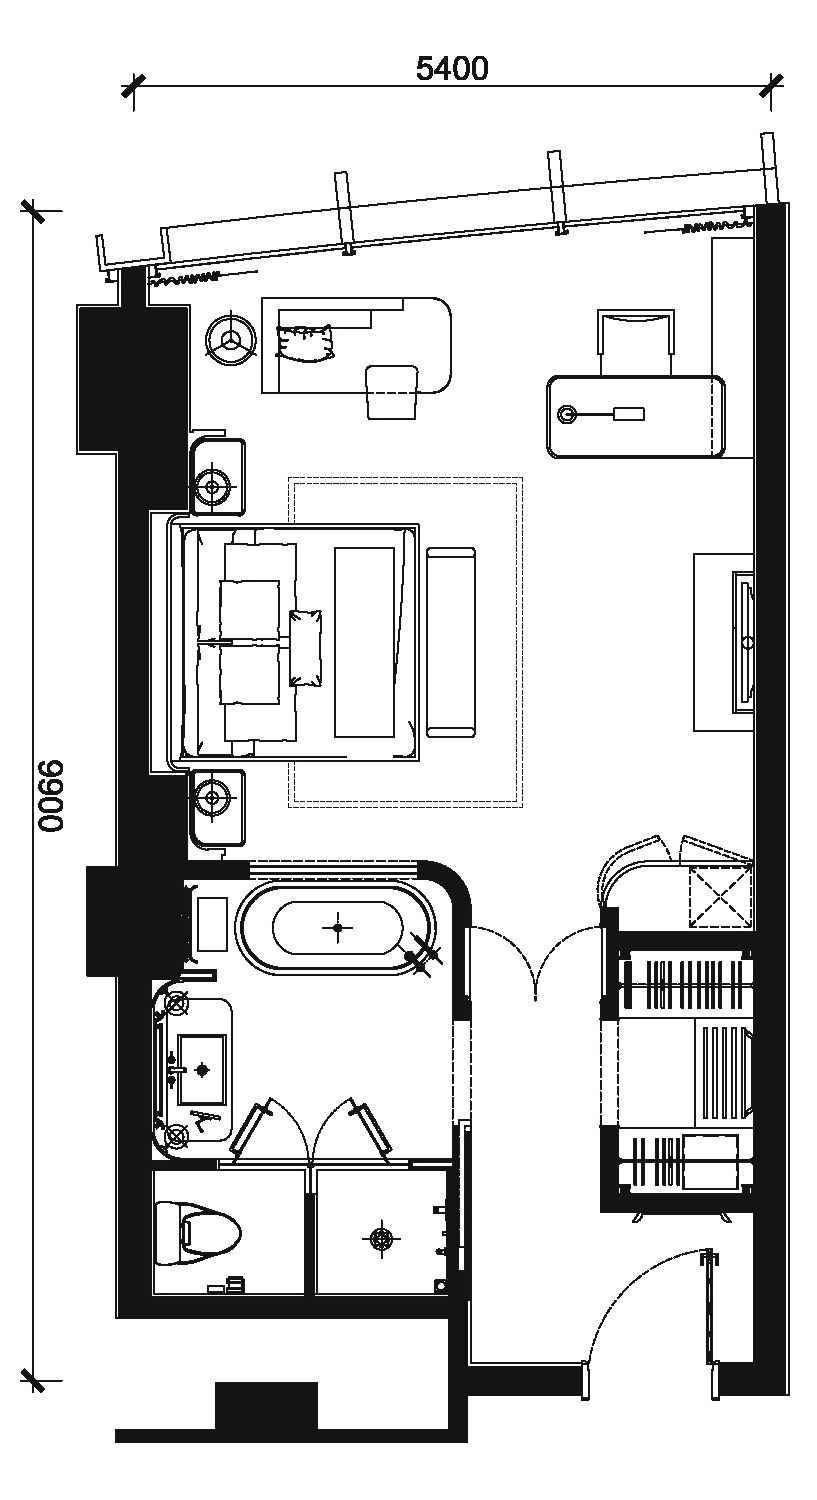 Hotel Room Plan: 深圳瑞吉酒店 (2011)|The St. Regis Shenzhen (With Images)